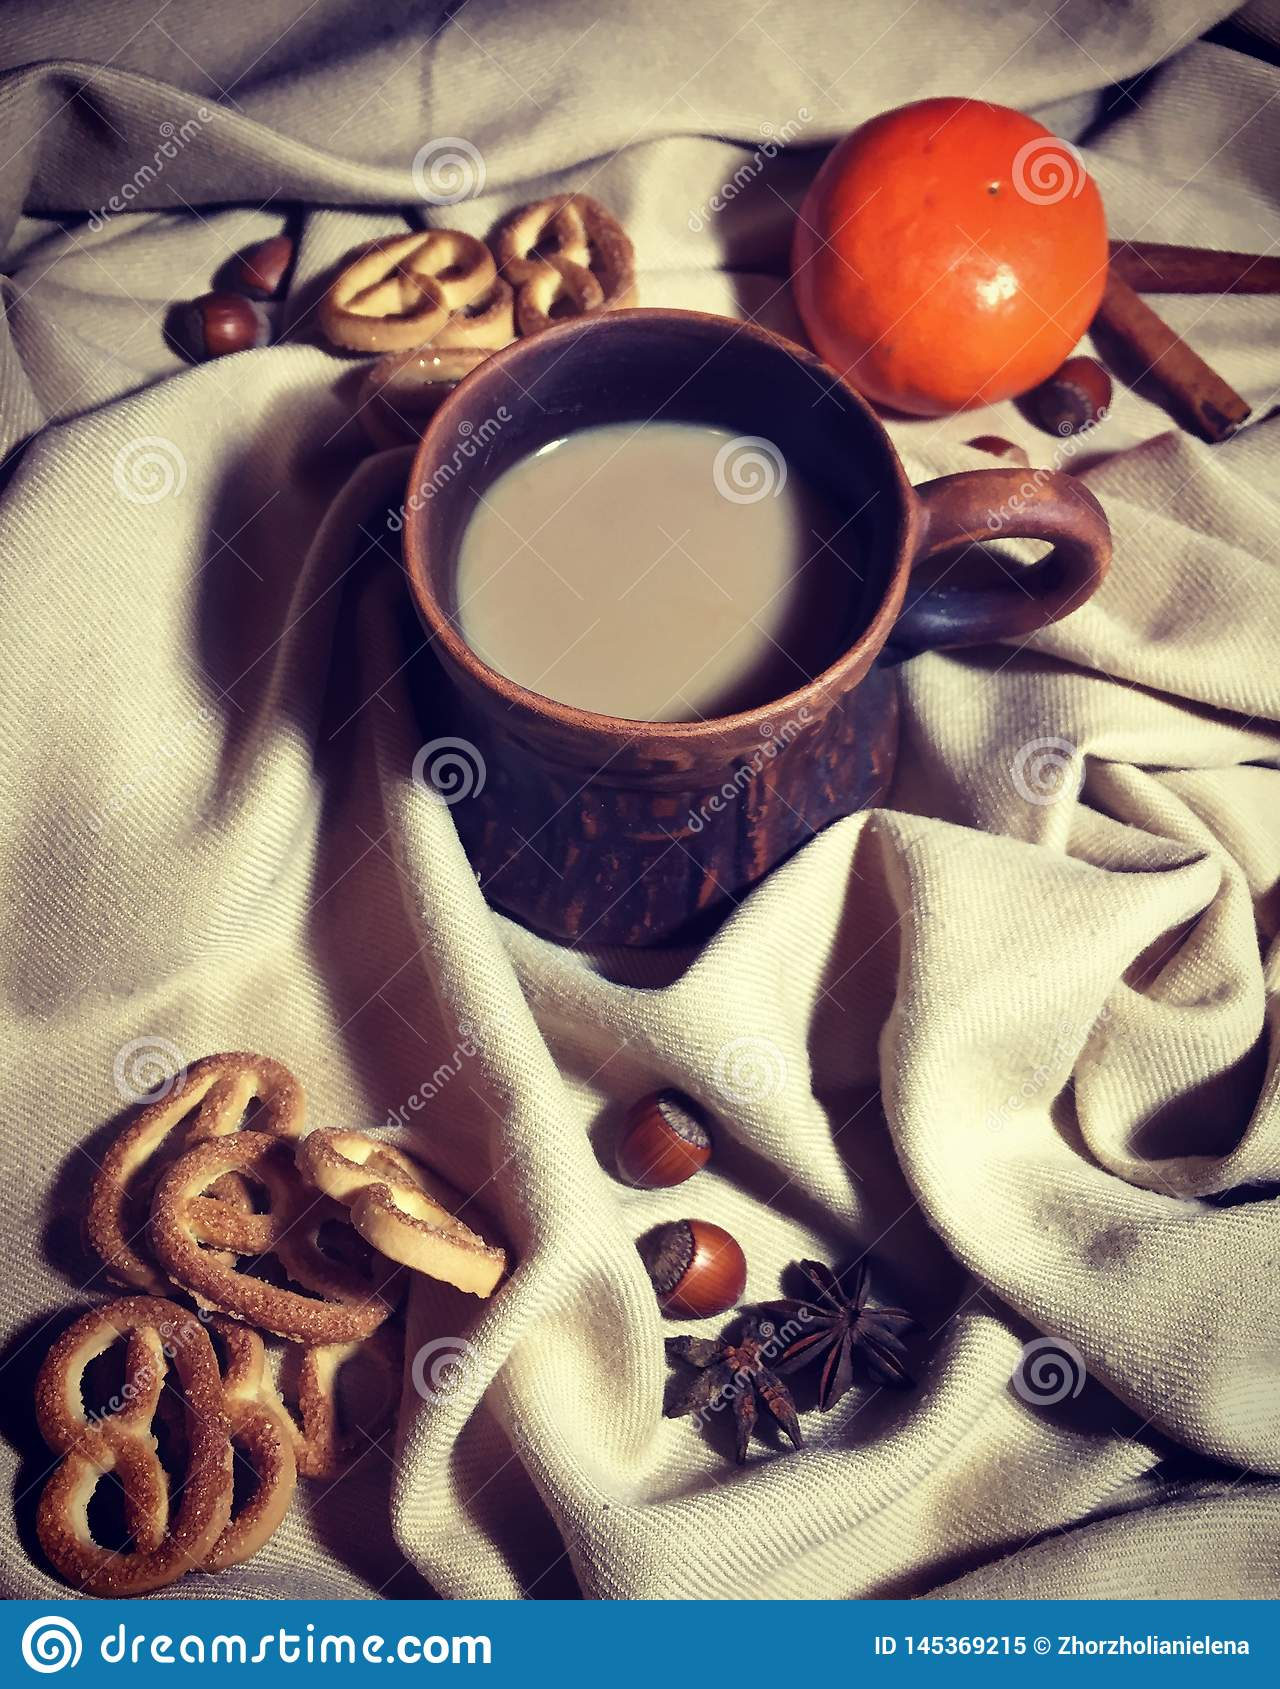 A cup of coffee with milk.